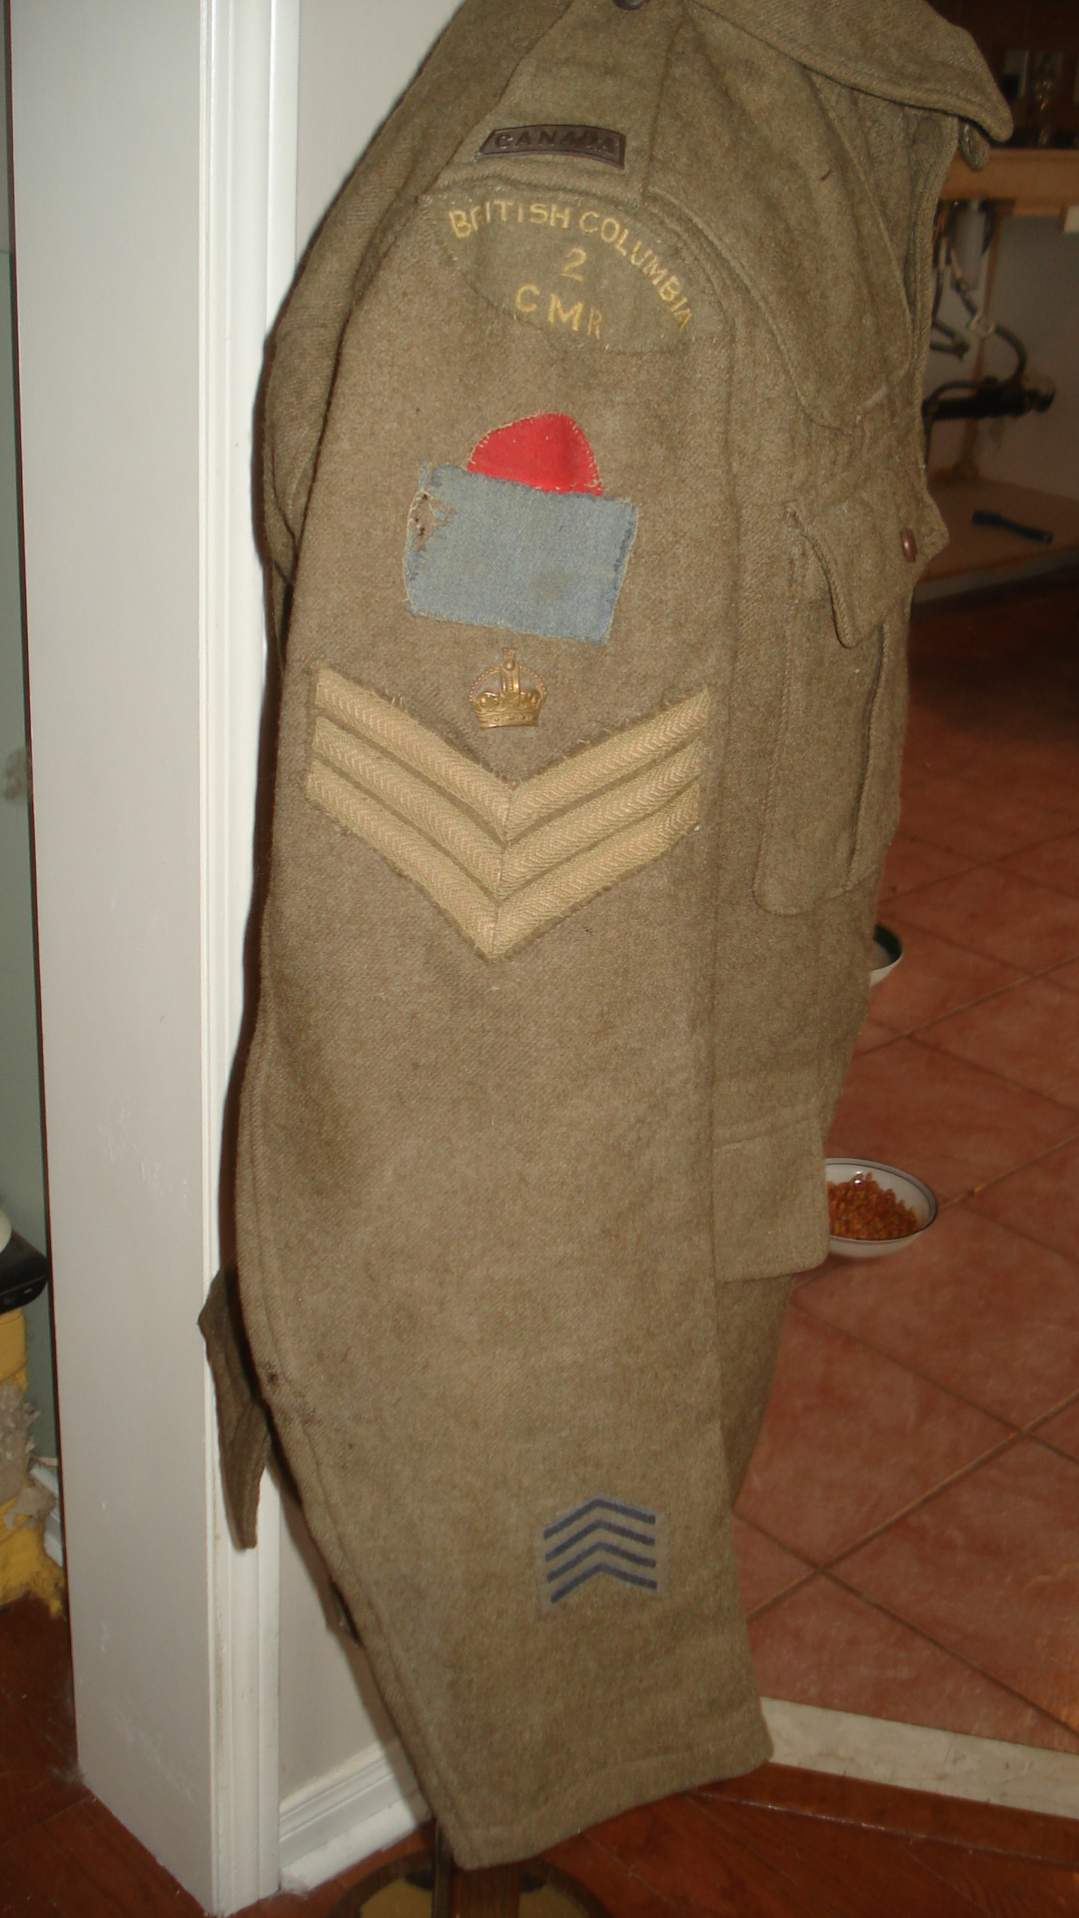 My NEW WW1 2 Canadian Mounted Rifles Tunic with all insignia